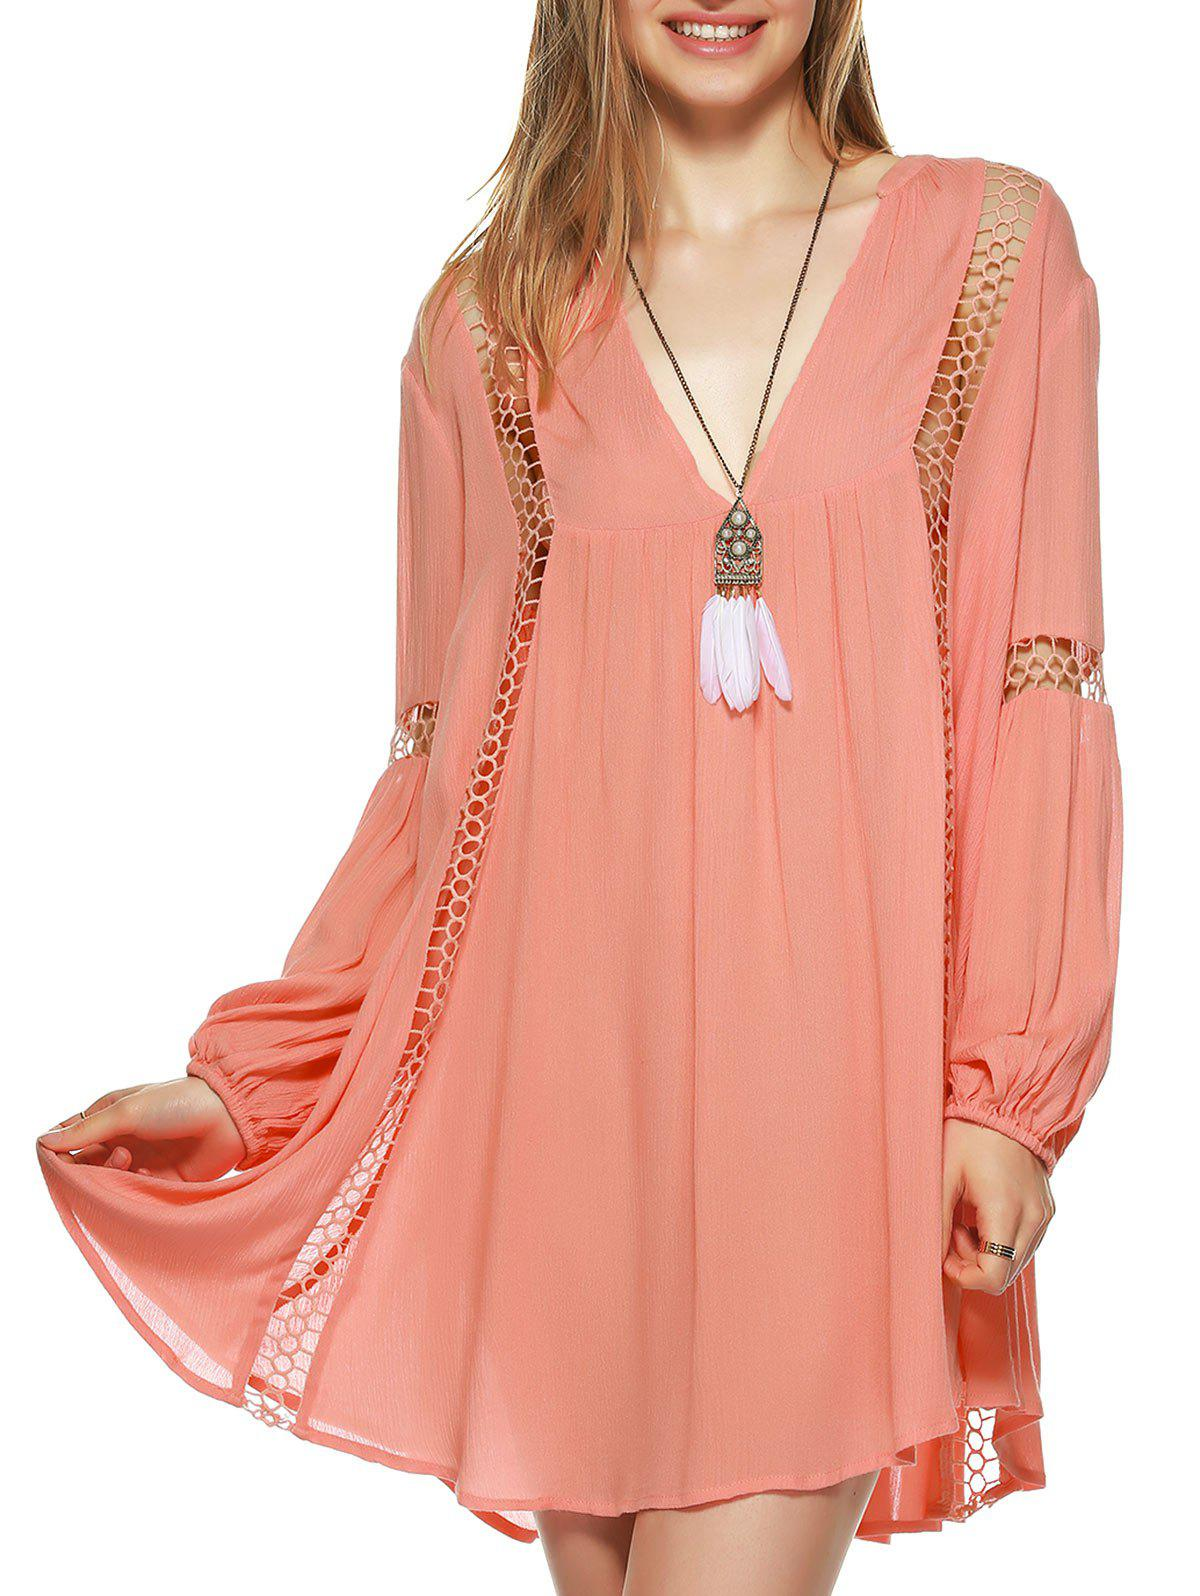 Plunging Neck Hollow Out Blouse - ORANGEPINK XL